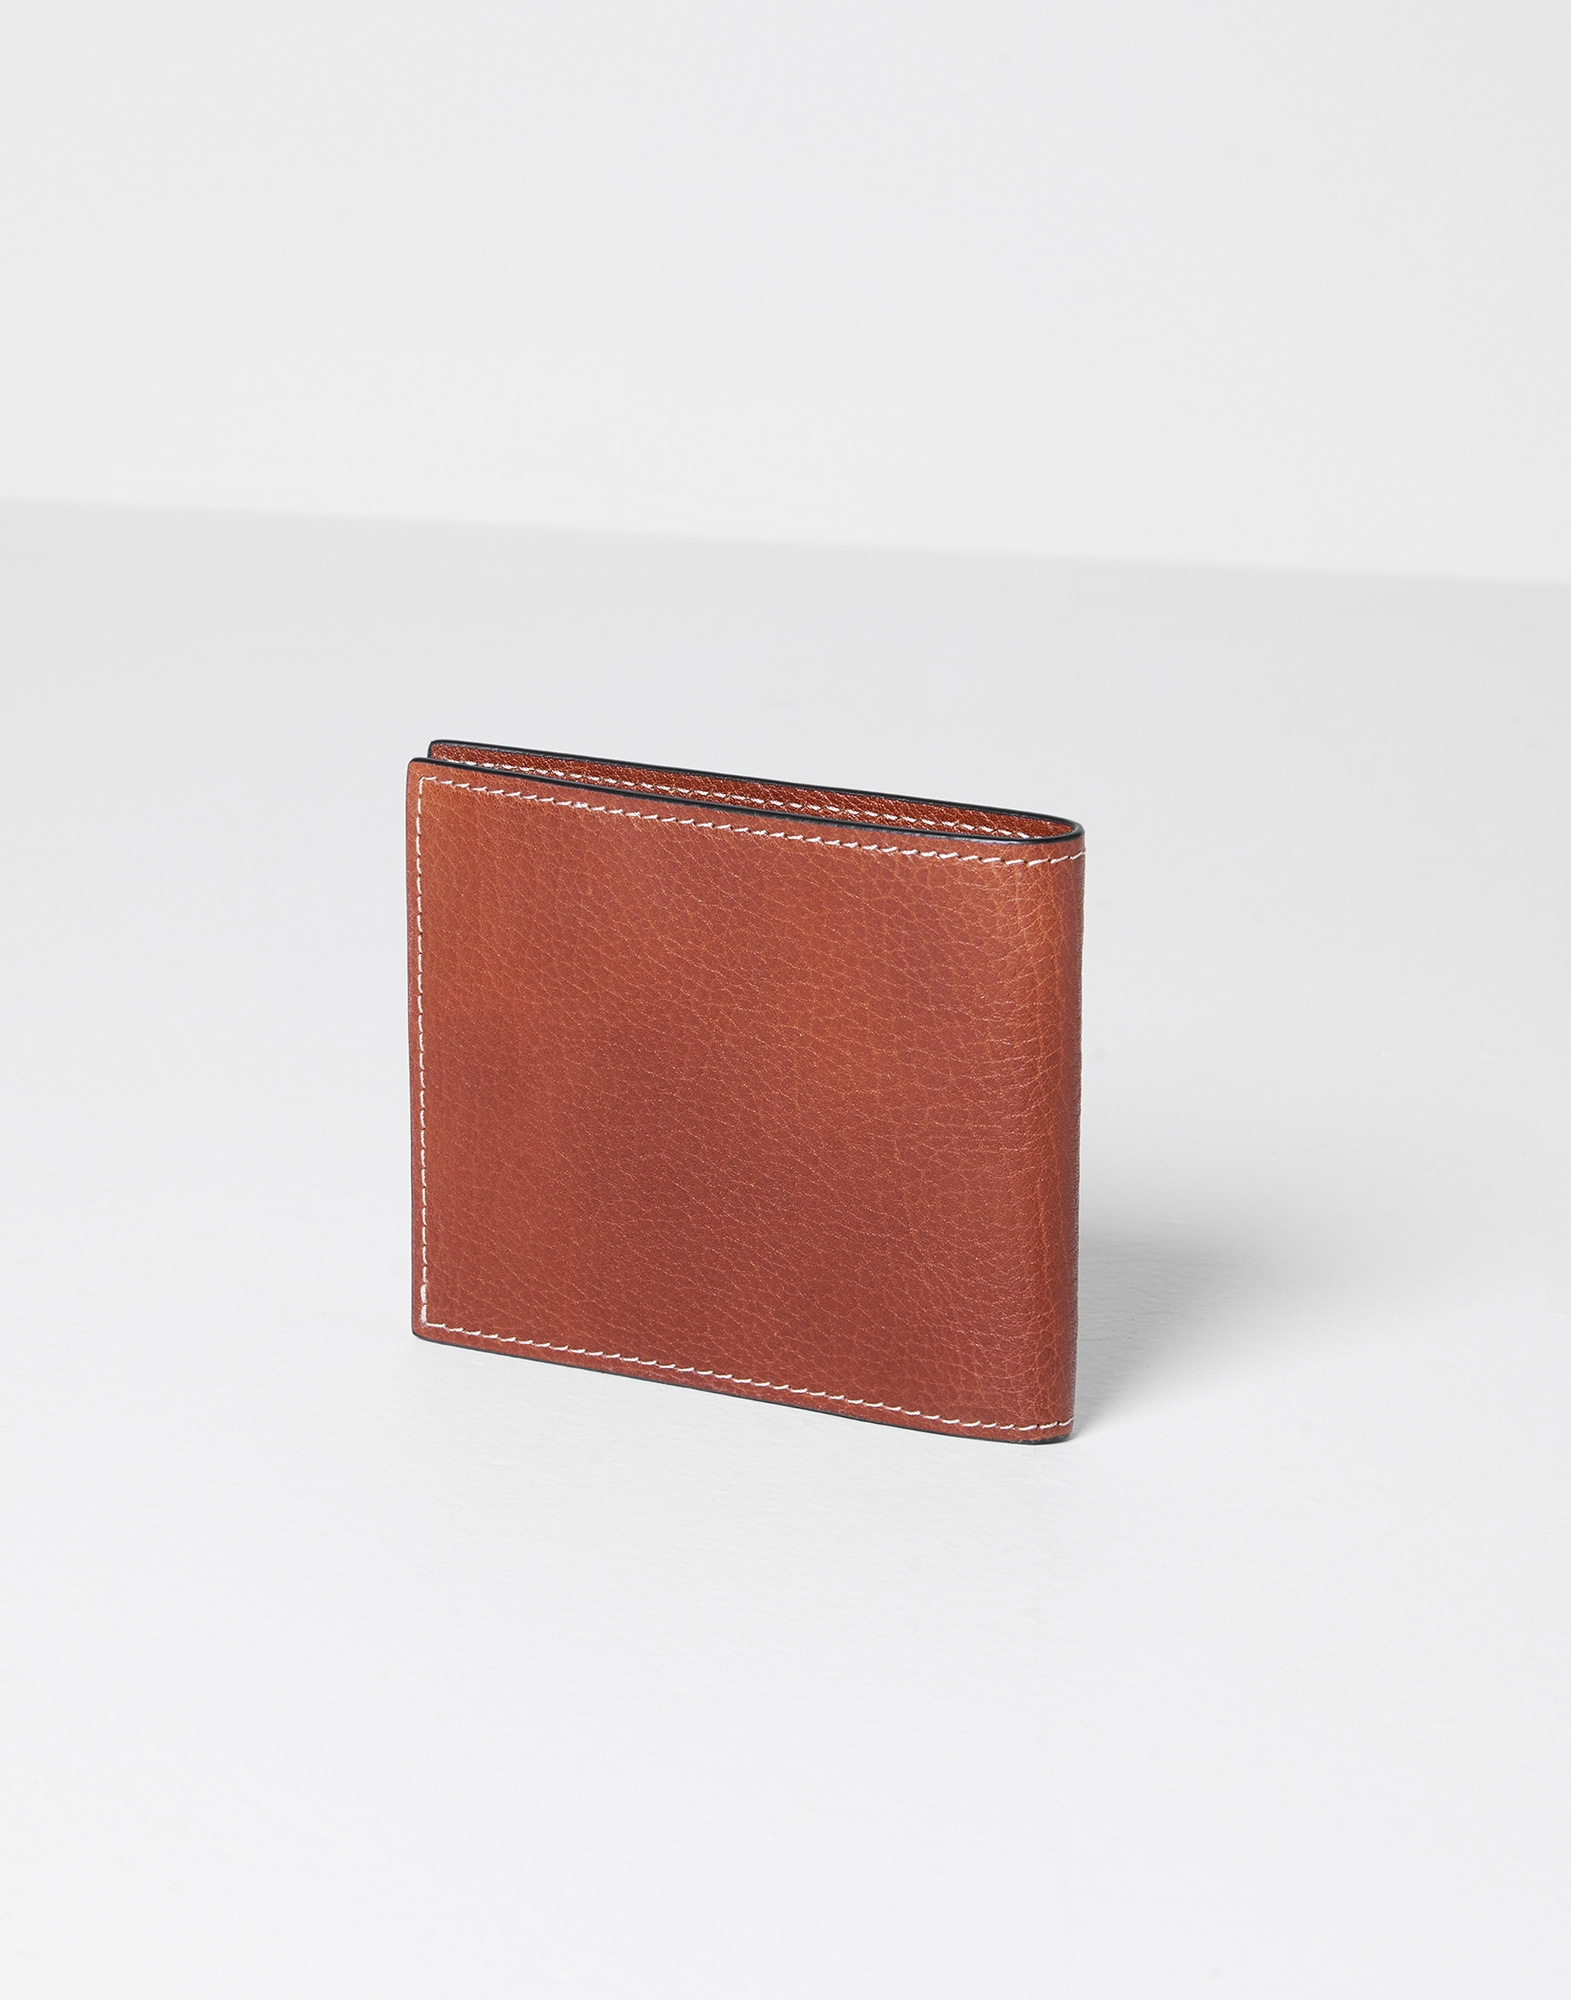 Wallet - Back view